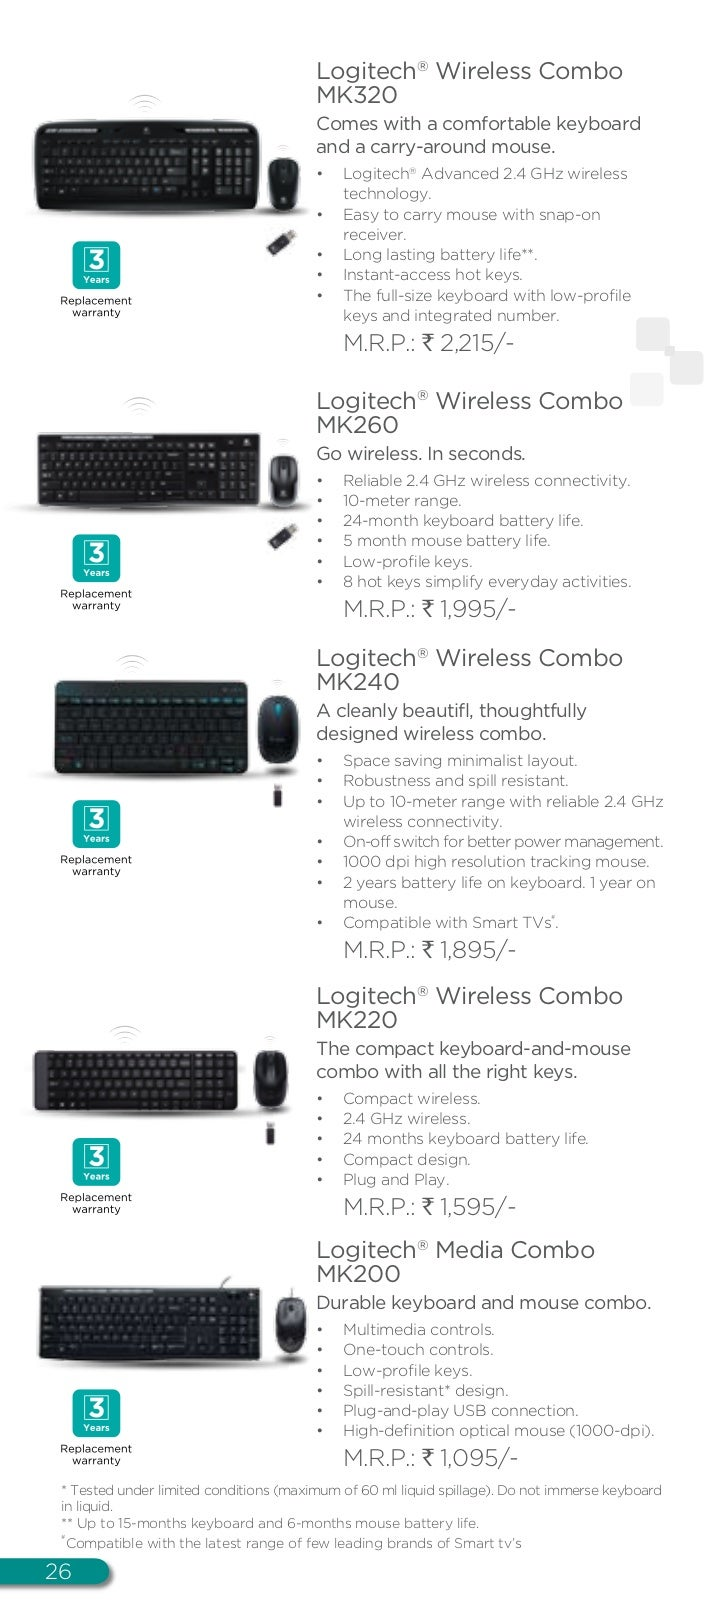 c5b03e88570 Logitech Digital IT Catalogue